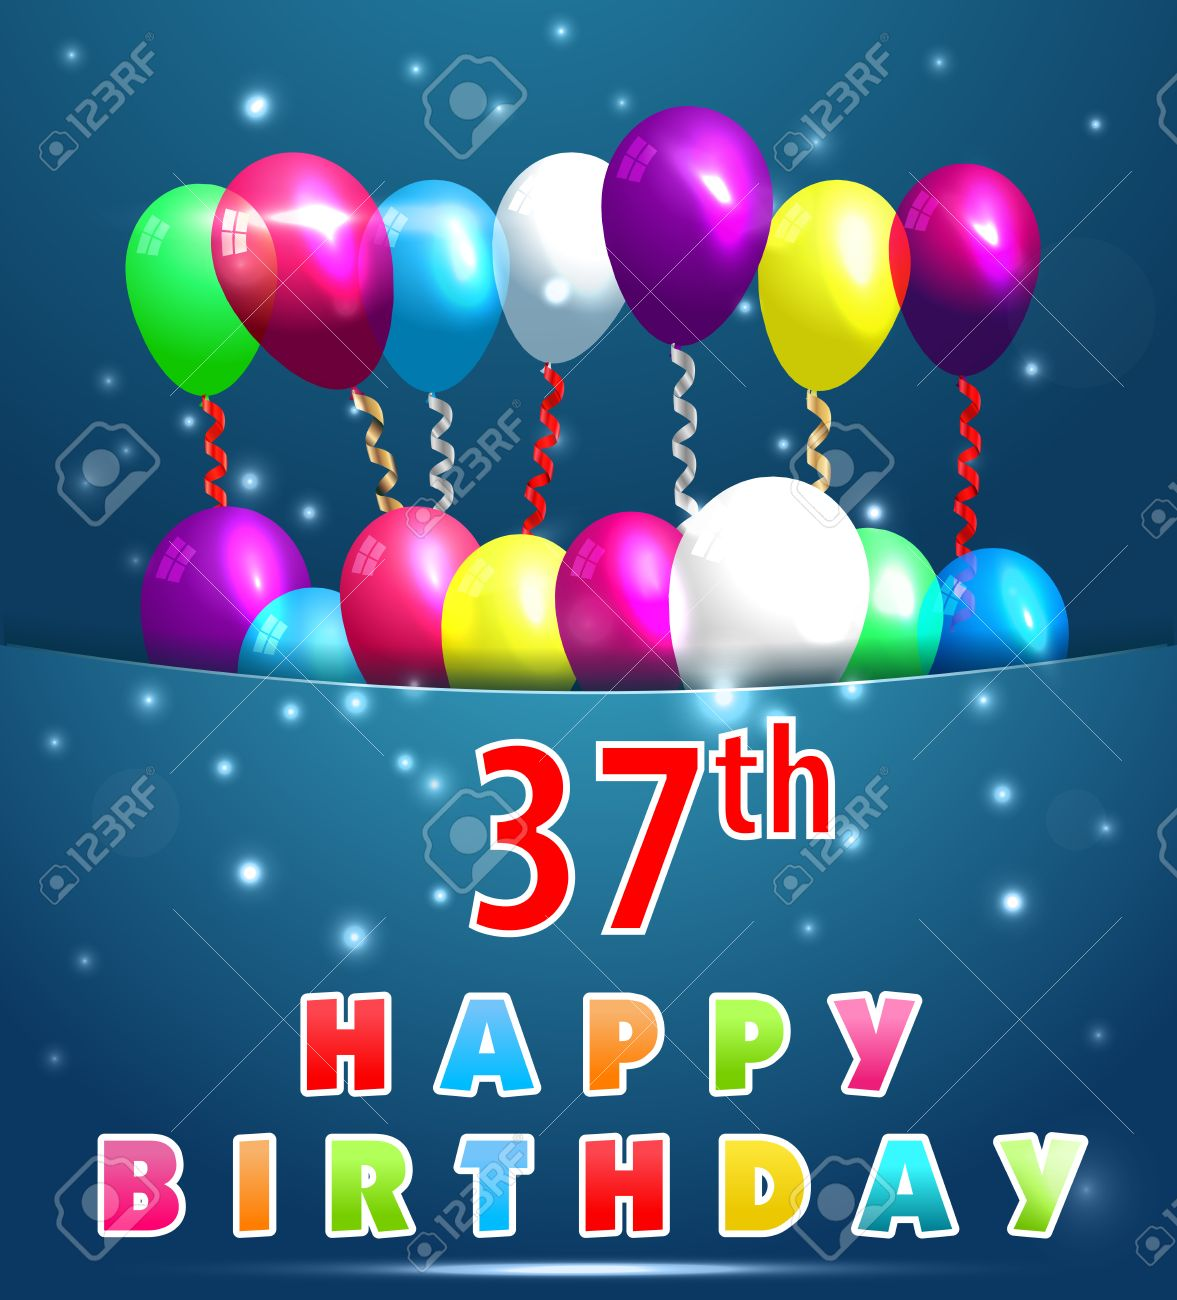 37 Year Happy Birthday Card With Balloons And Ribbons 37th Stock Vector